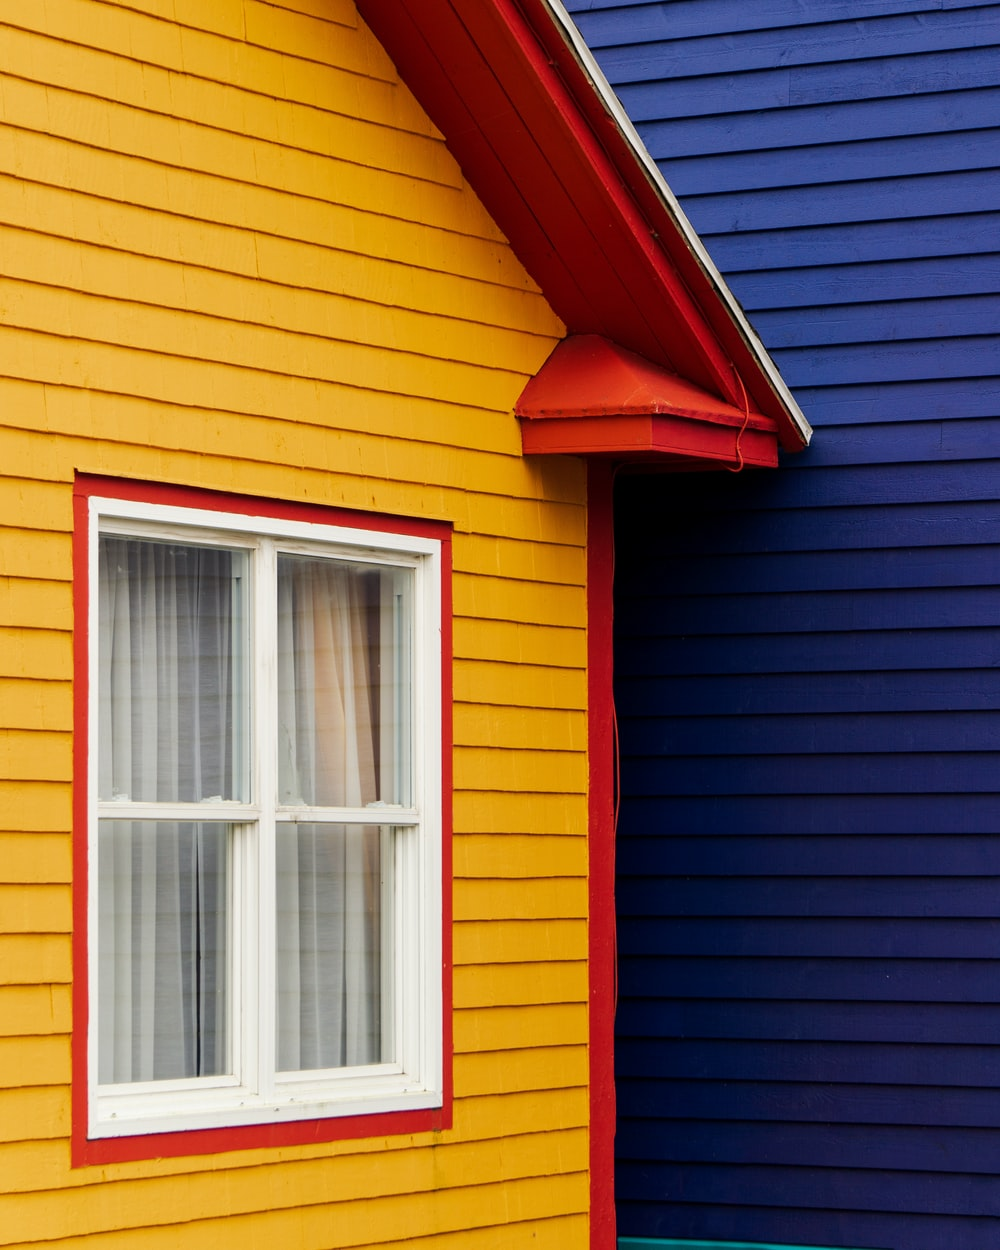 yellow and red wooden house